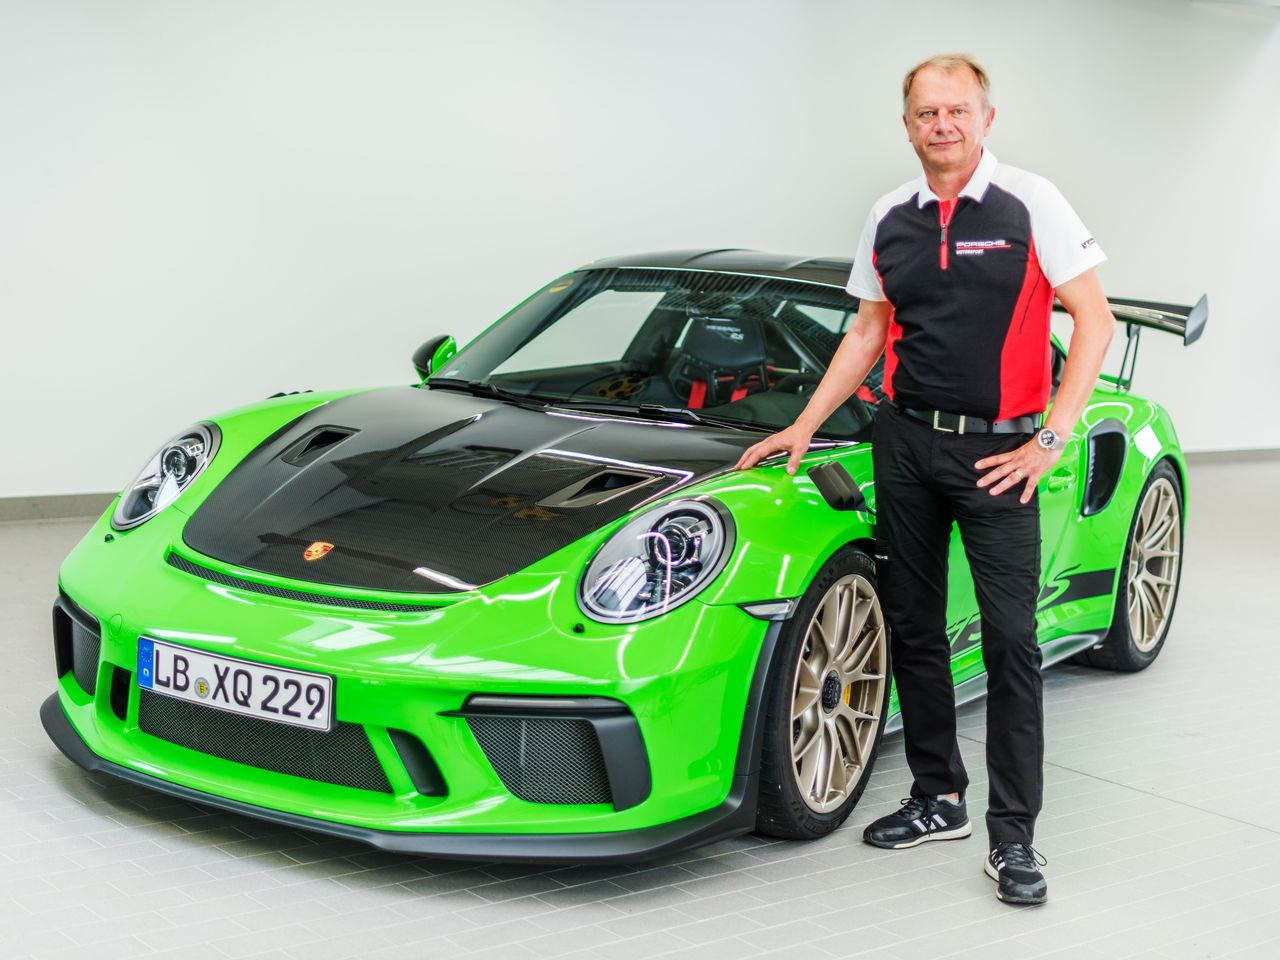 Business as usual: For Jan Frank, a Porsche performance engineer who has also worked on the 918 Spyder and the 911 GT2 RS, it's the third time in a row that his team has driven a newly developed car around the Nordschleife in under seven minutes.